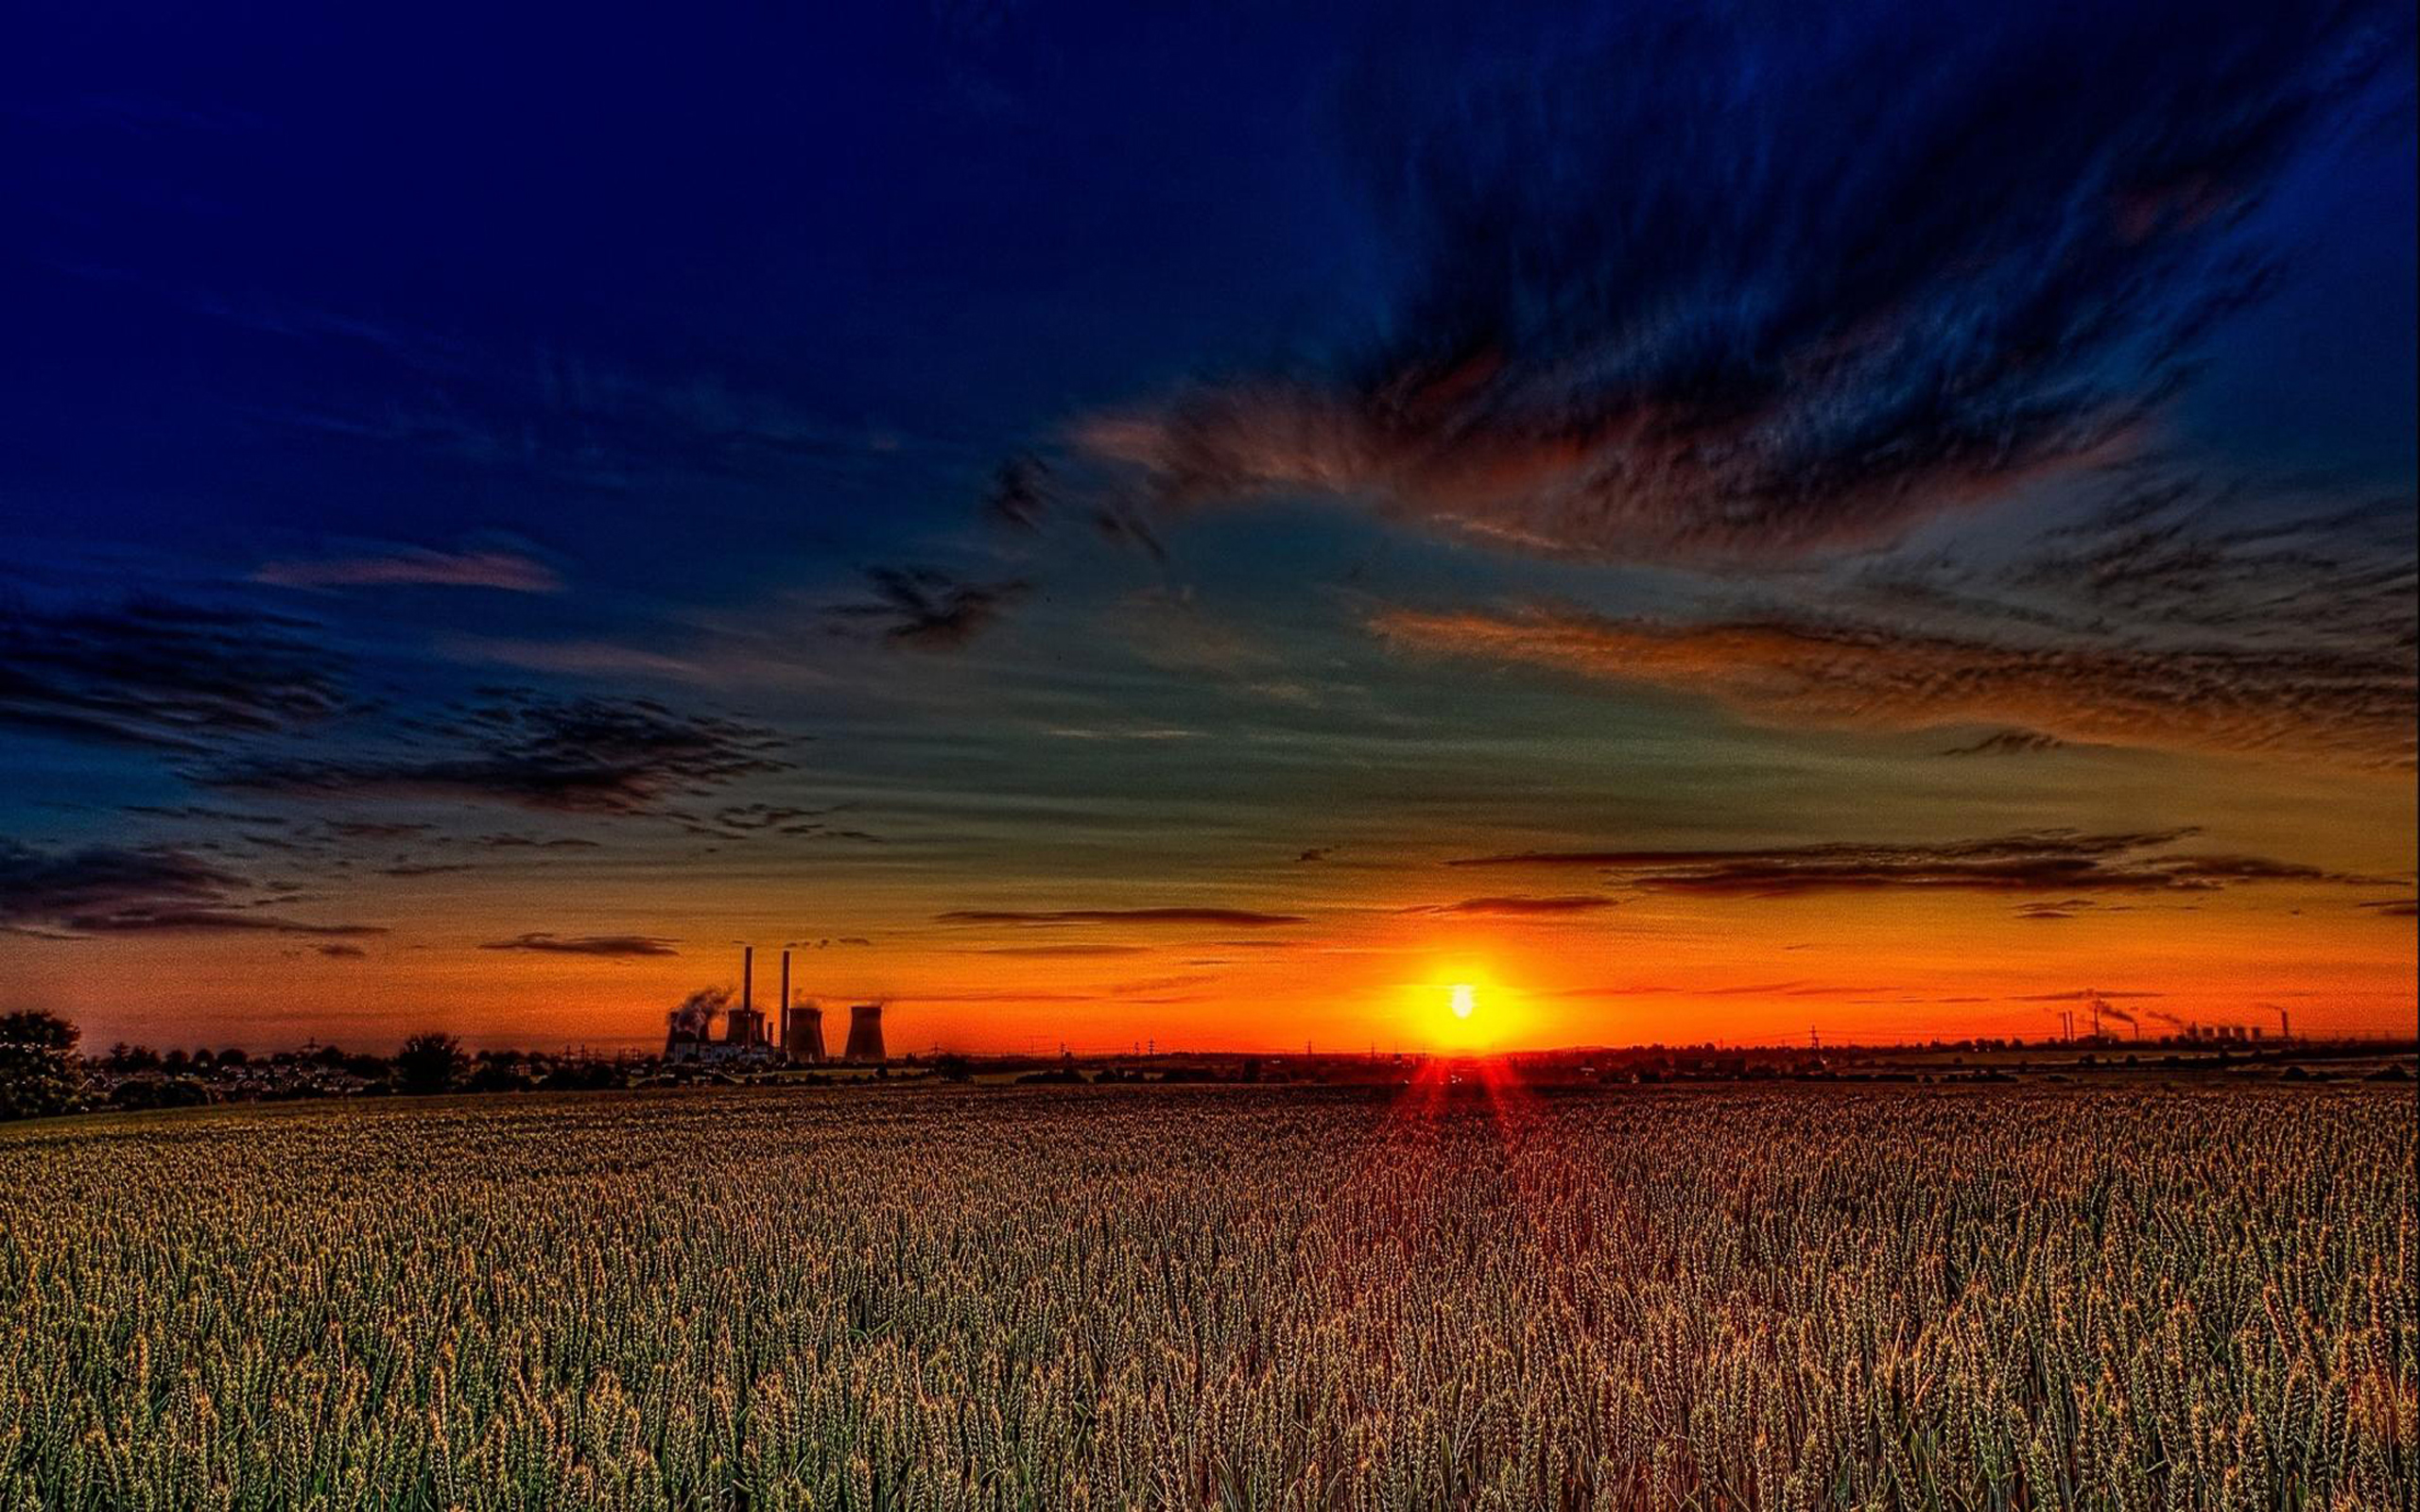 Beautiful Sunset Over Wheat Fields Hdr 1438167 : Wallpapers13.com